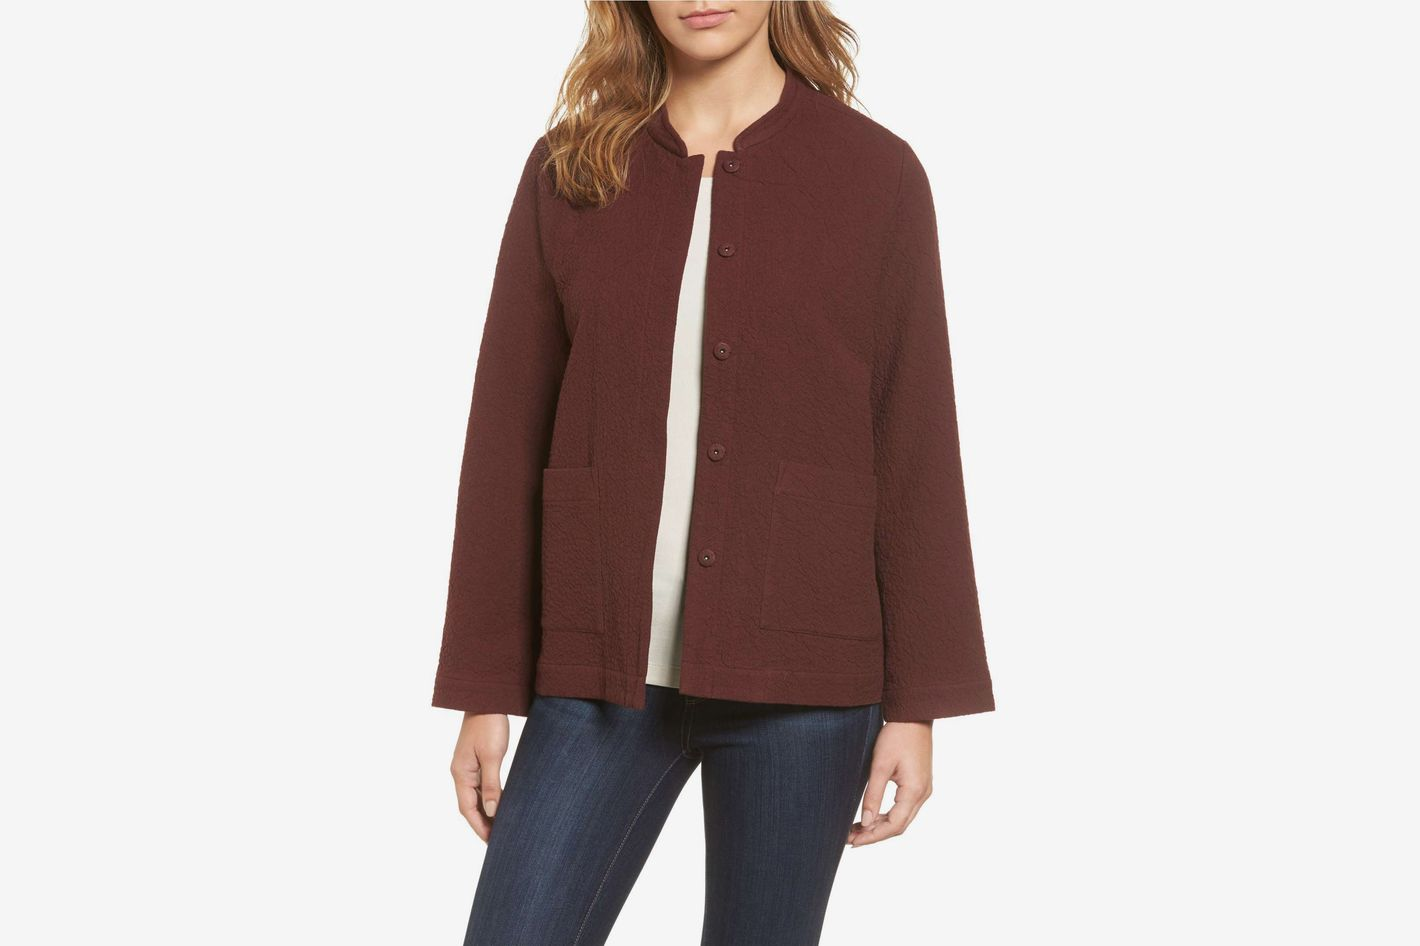 Eileen Fisher Organic Cotton Jacket